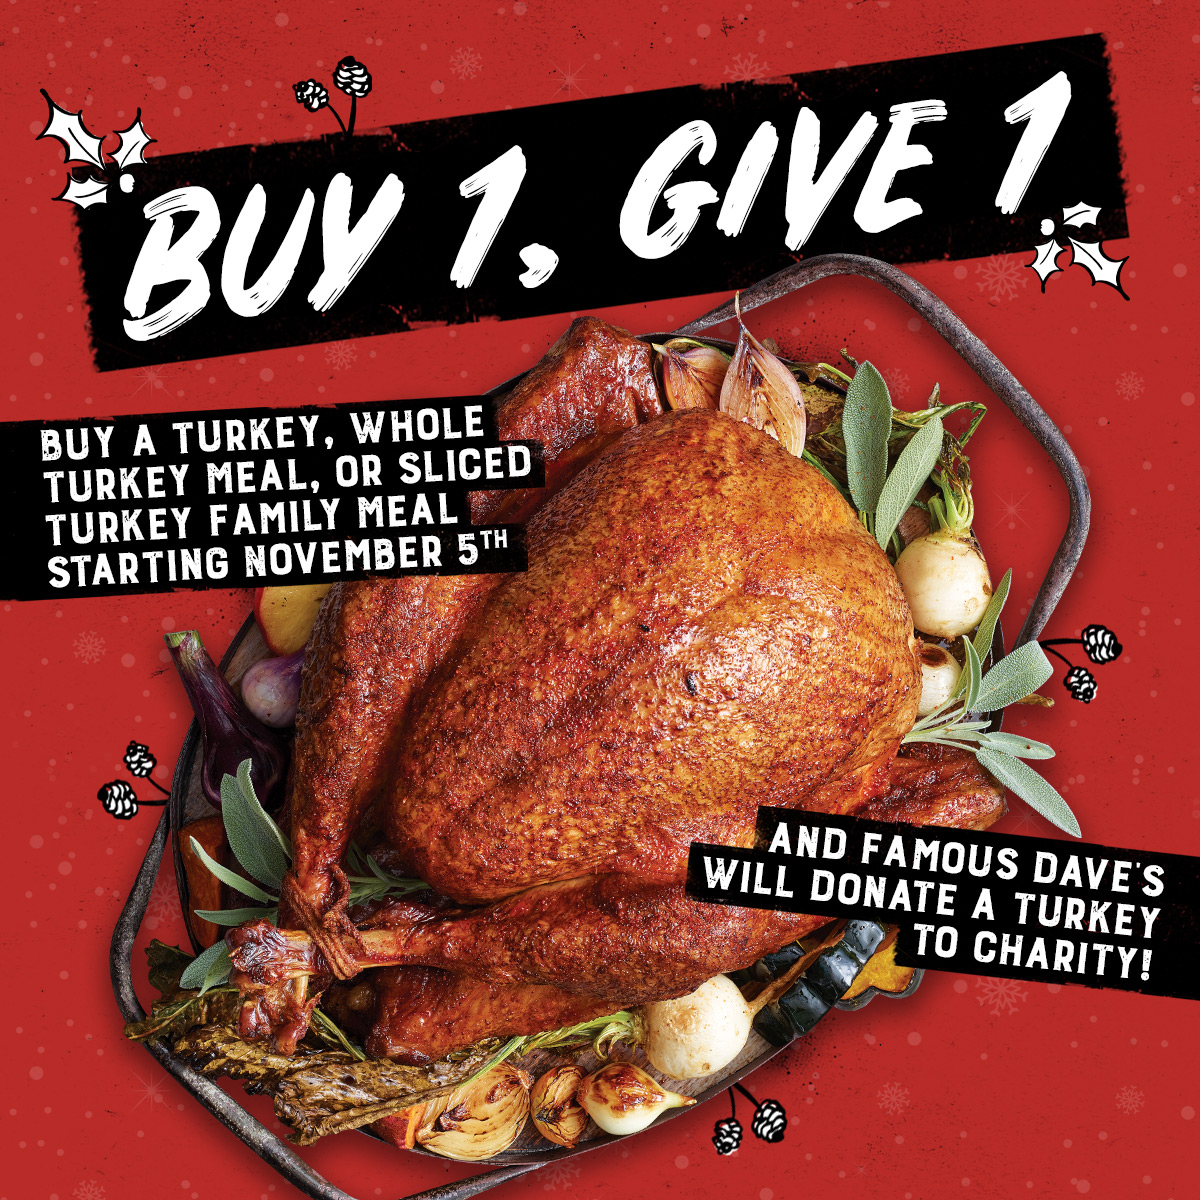 Haven't got your Thanksgiving turkey yet? @Famous_Daves has you covered. 🦃  For every turkey purchased from Famous Dave's locations in WA, they'll donate a turkey to @NWHarvest. 👊  Feed your family and a family in need!🍗